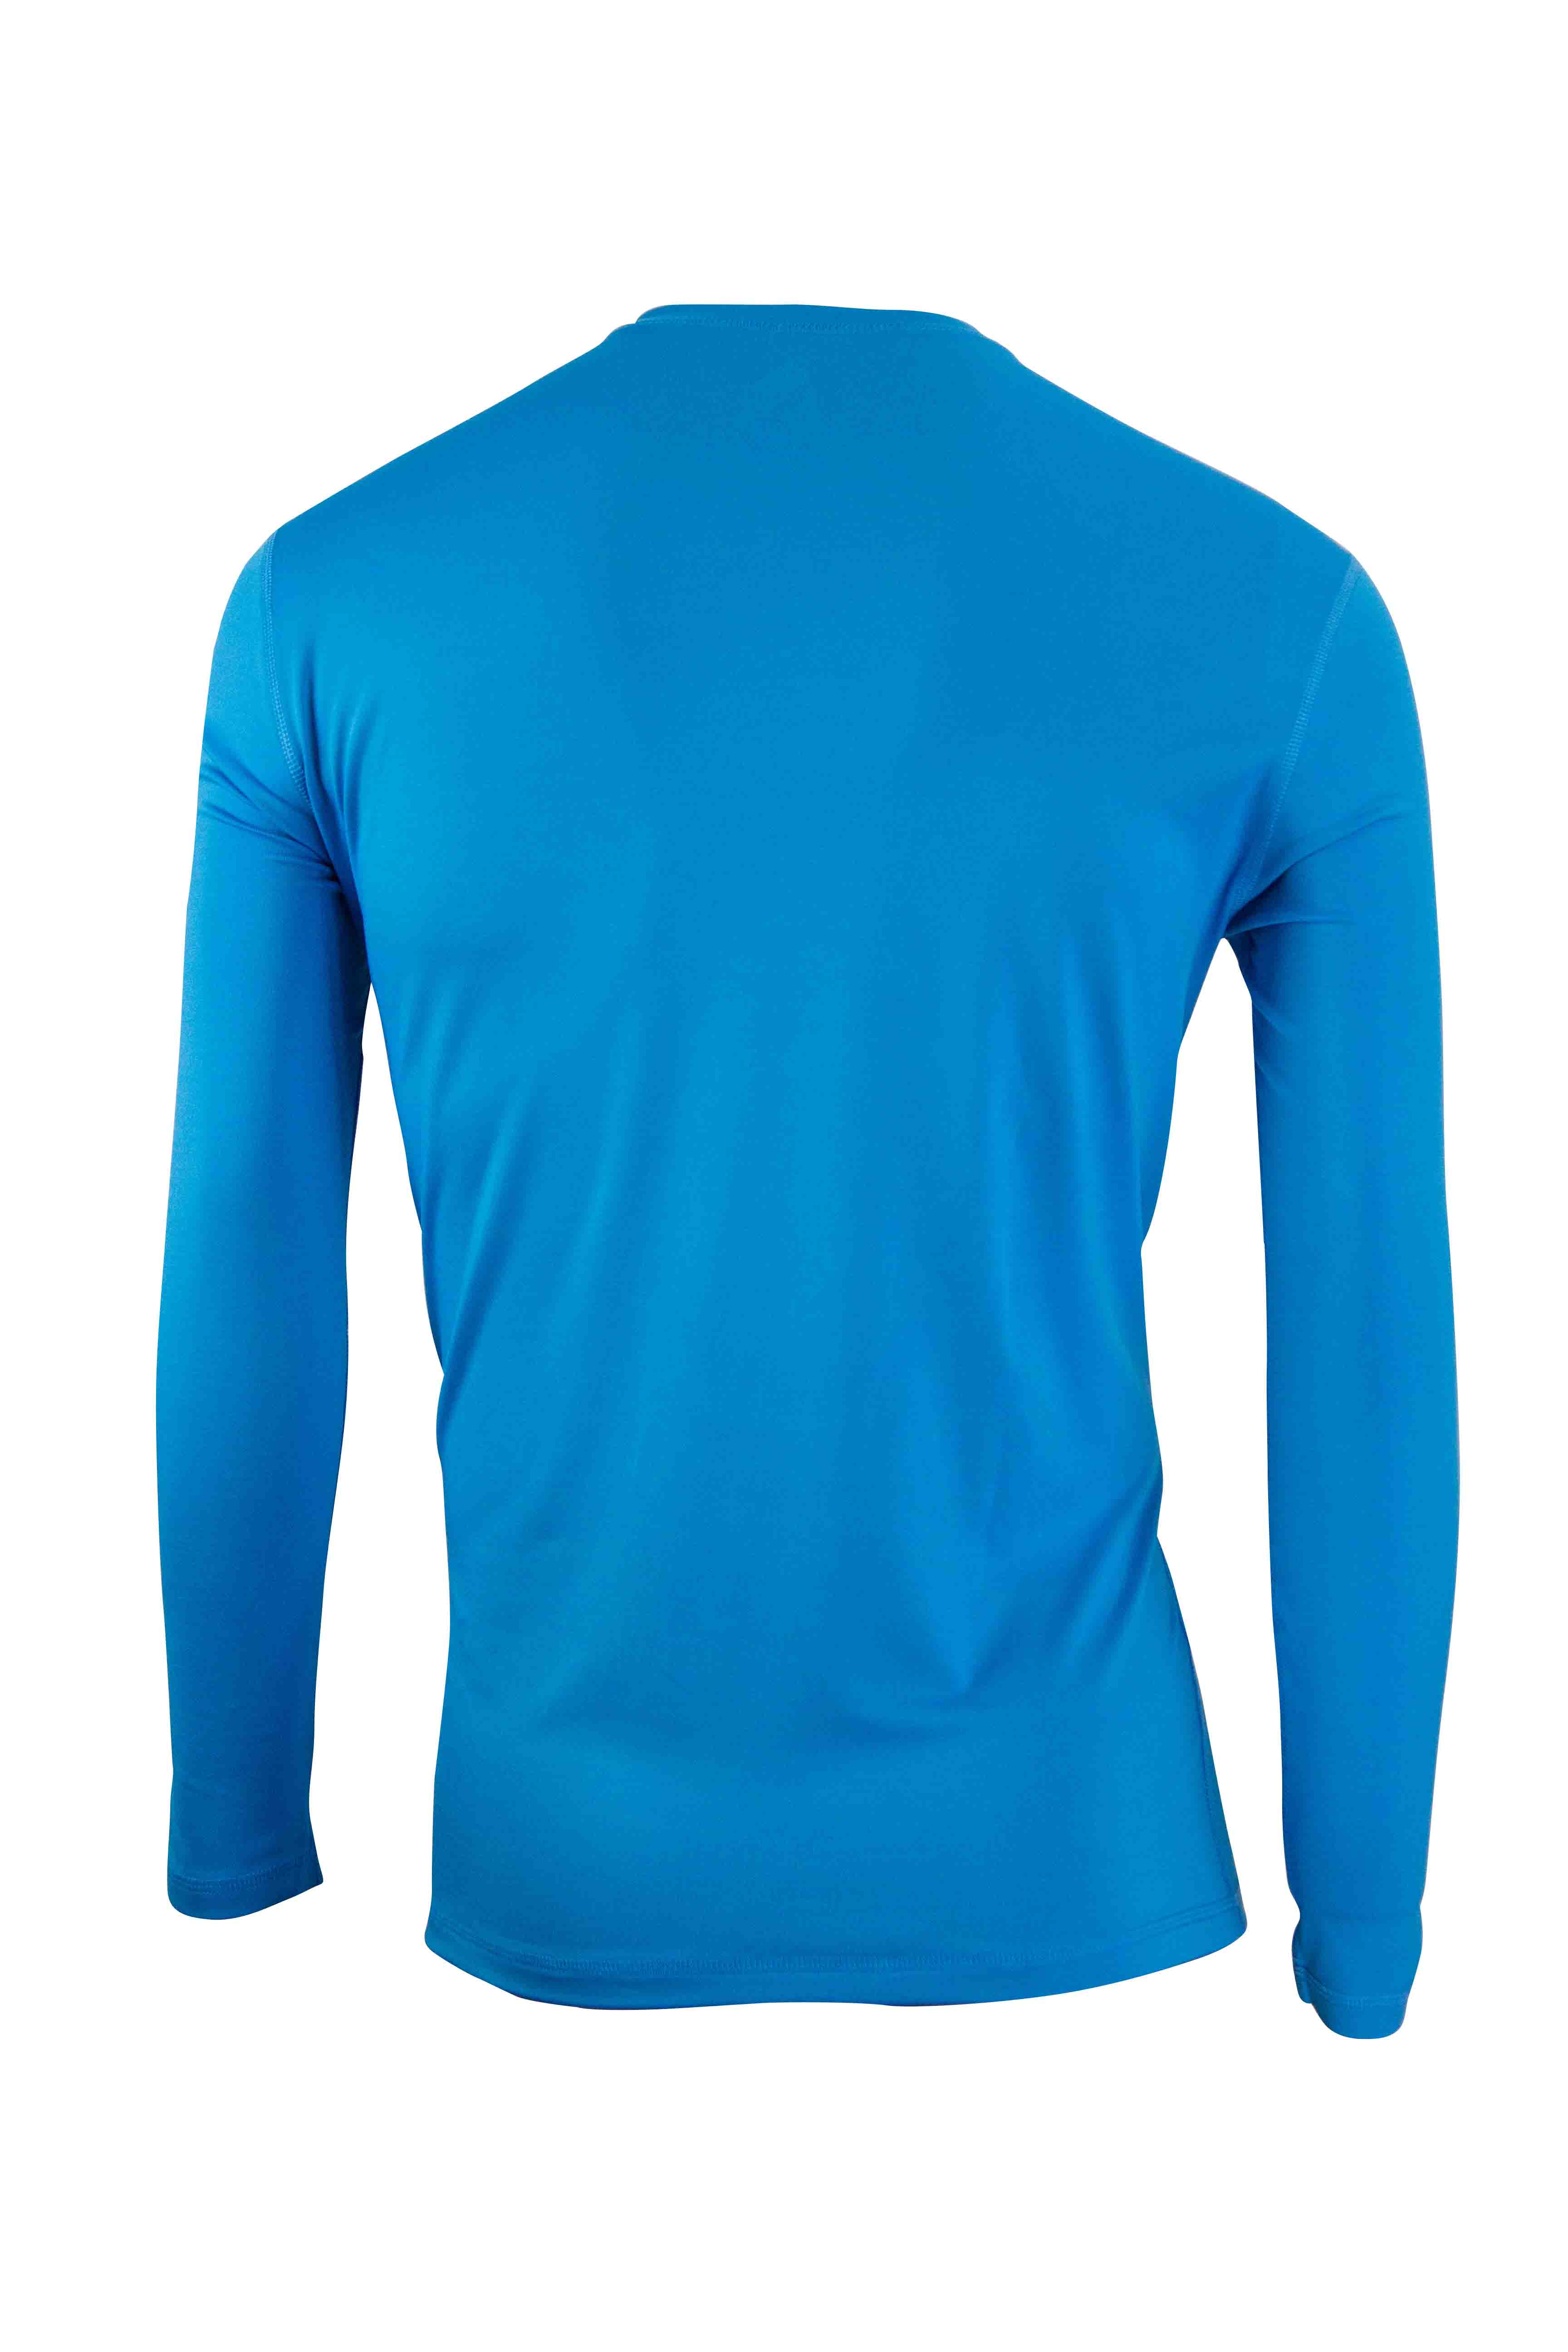 Quiksilver Mens Solid Streak Long Sleeve Rashguard Ocean Blue Men's Clothing